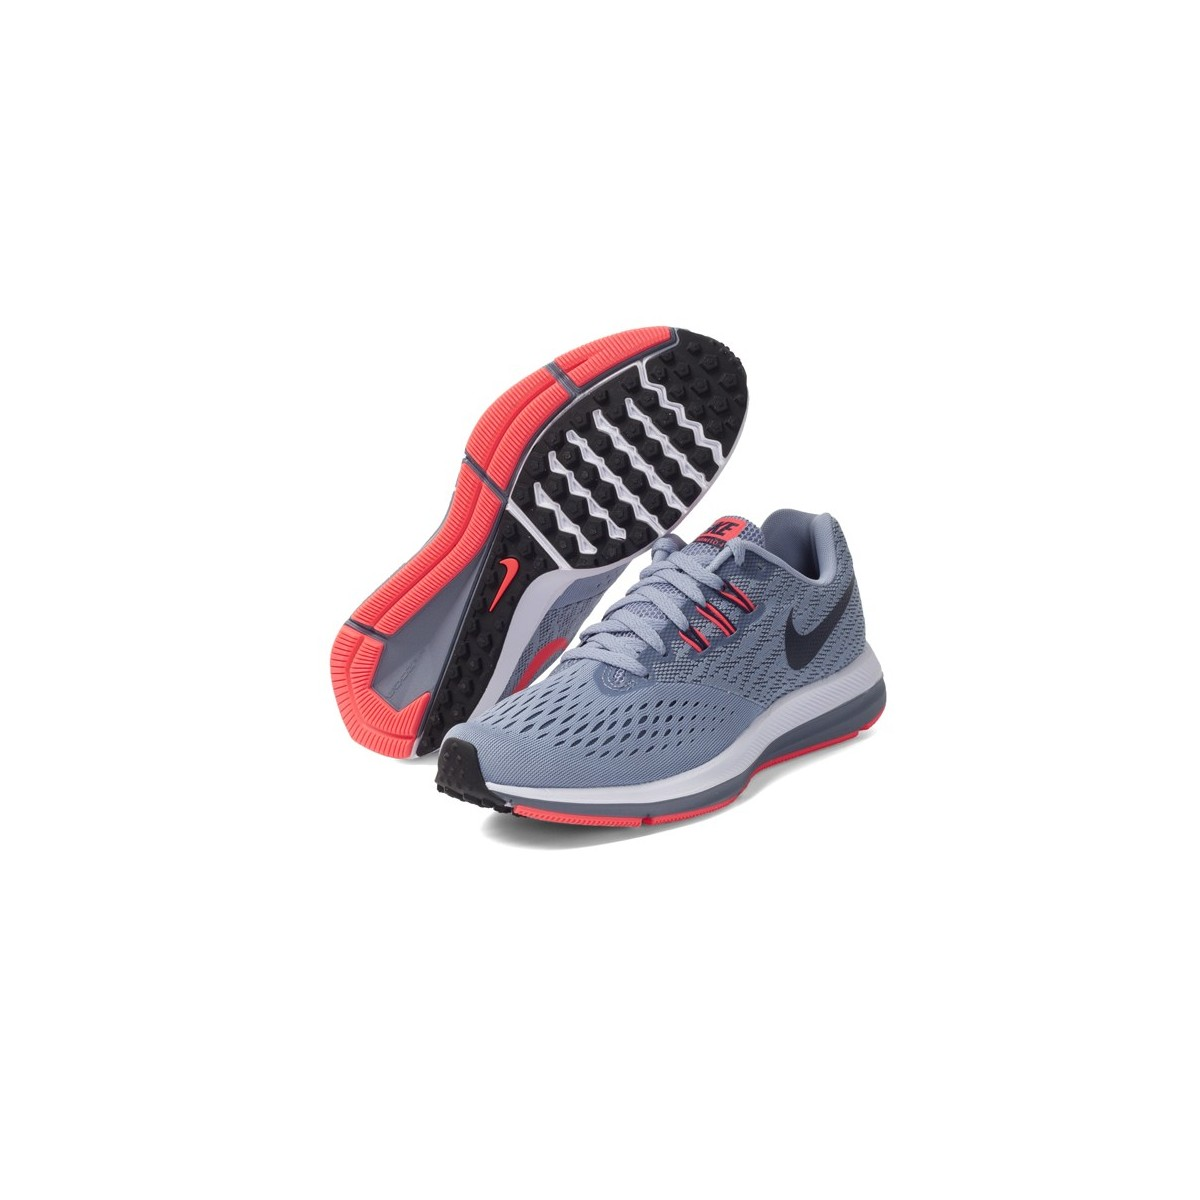 Zapatilla mujer nike zoom winflo 4 ru 898485 002 grises